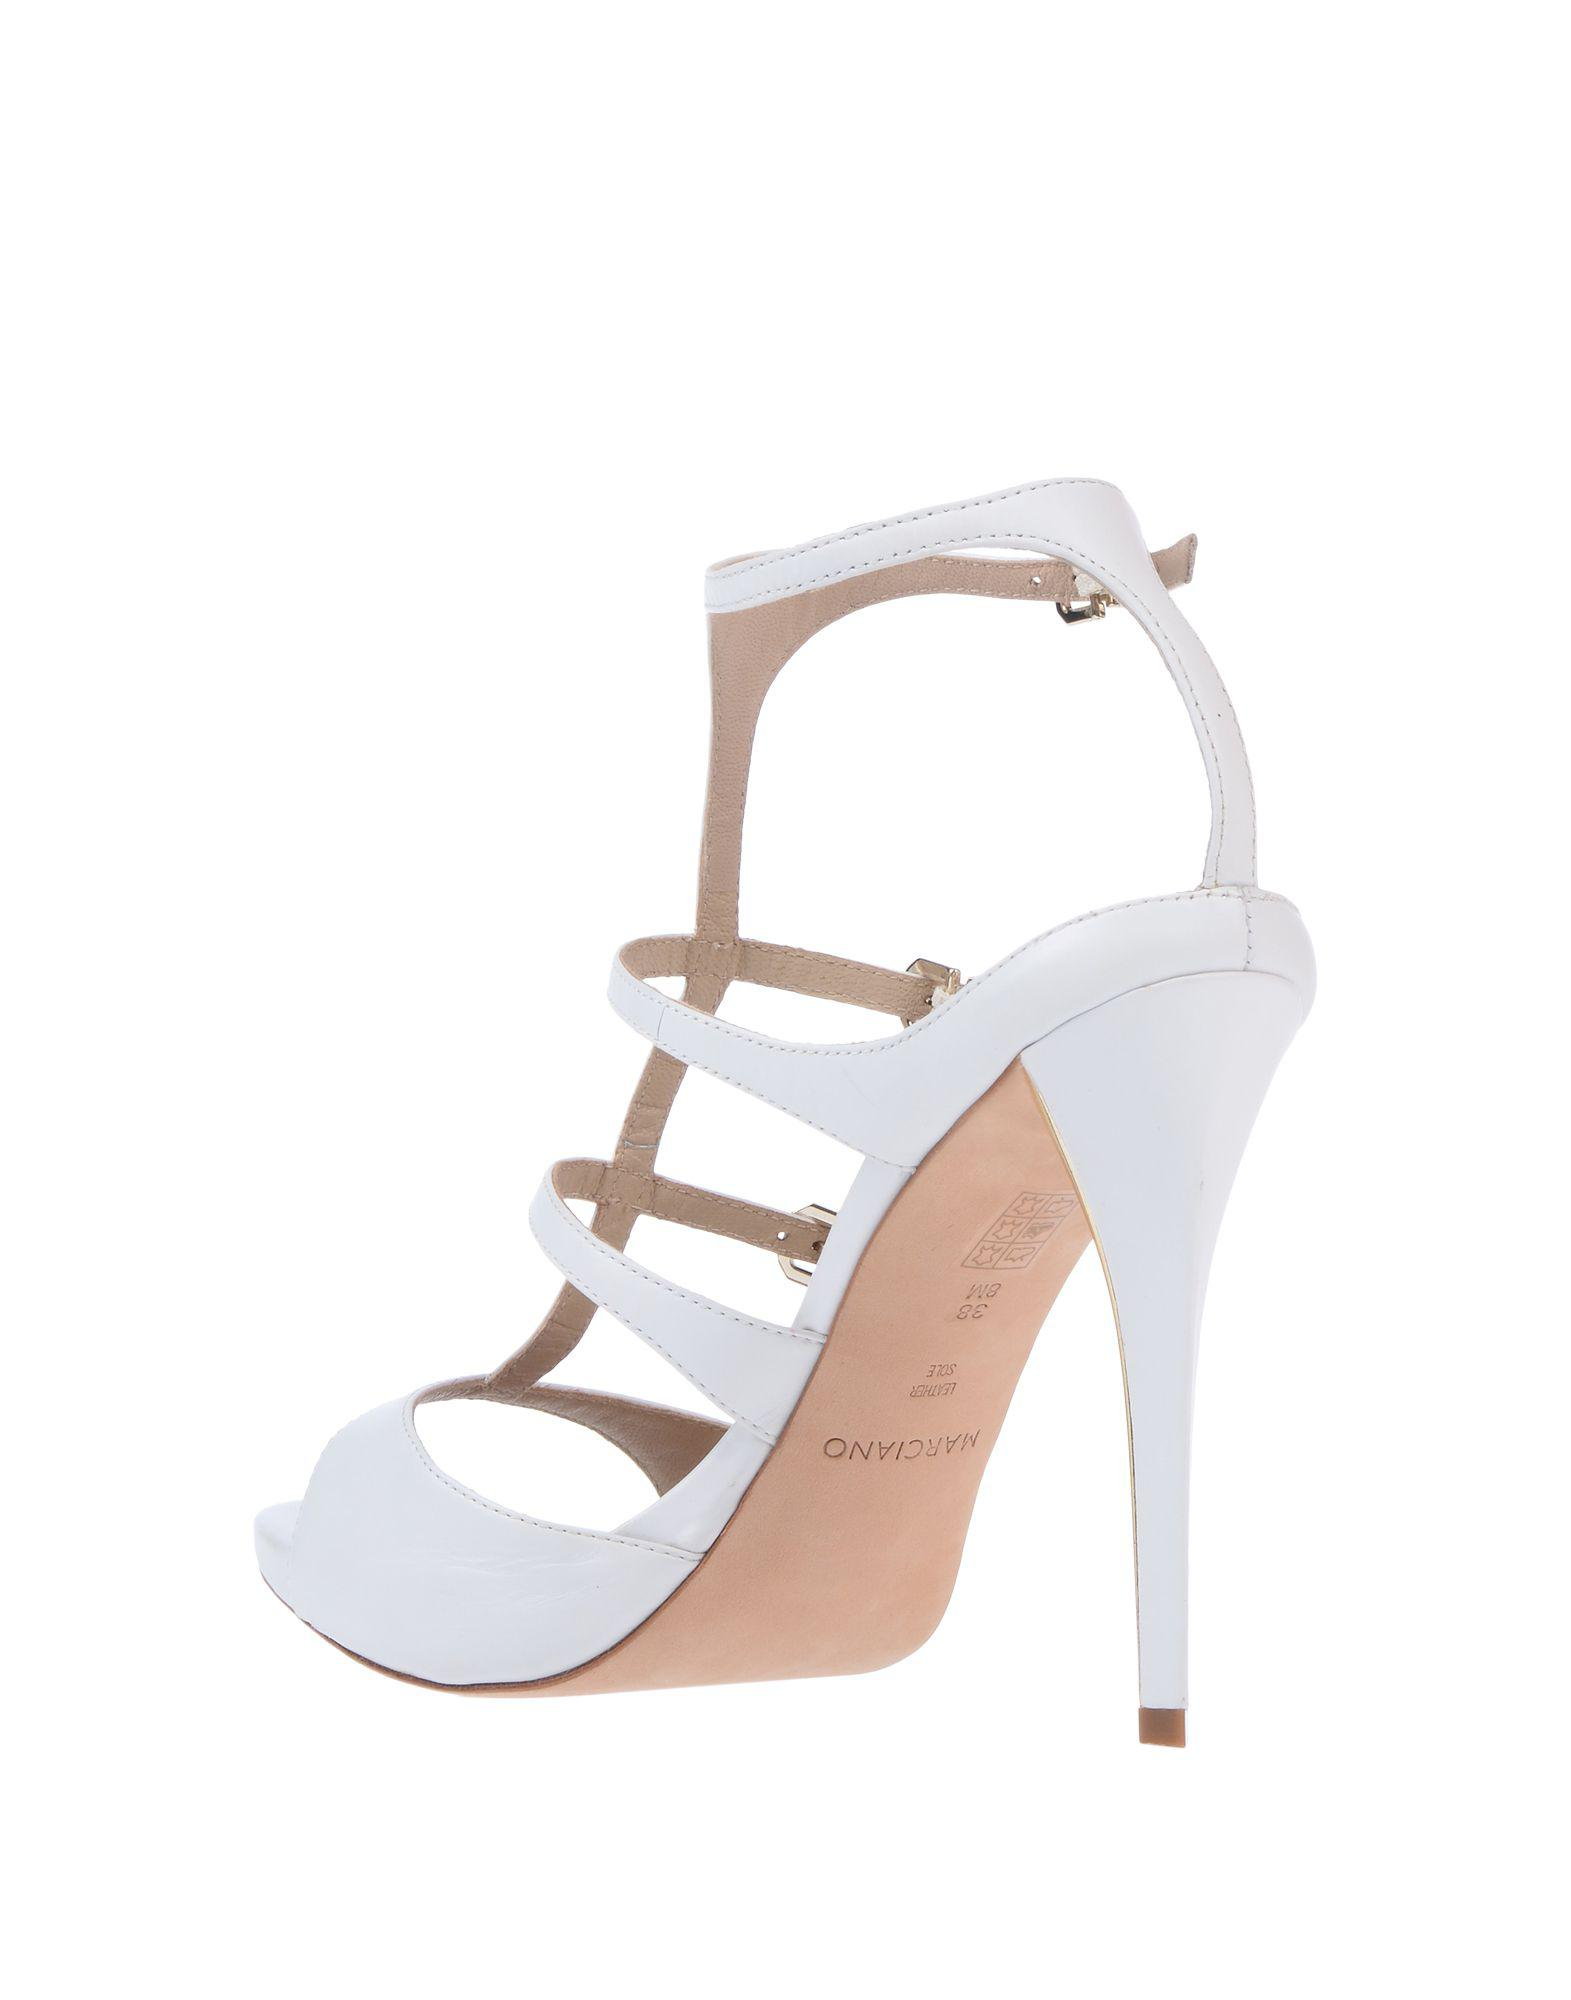 a8168d678399 Lyst - Guess Sandals in White